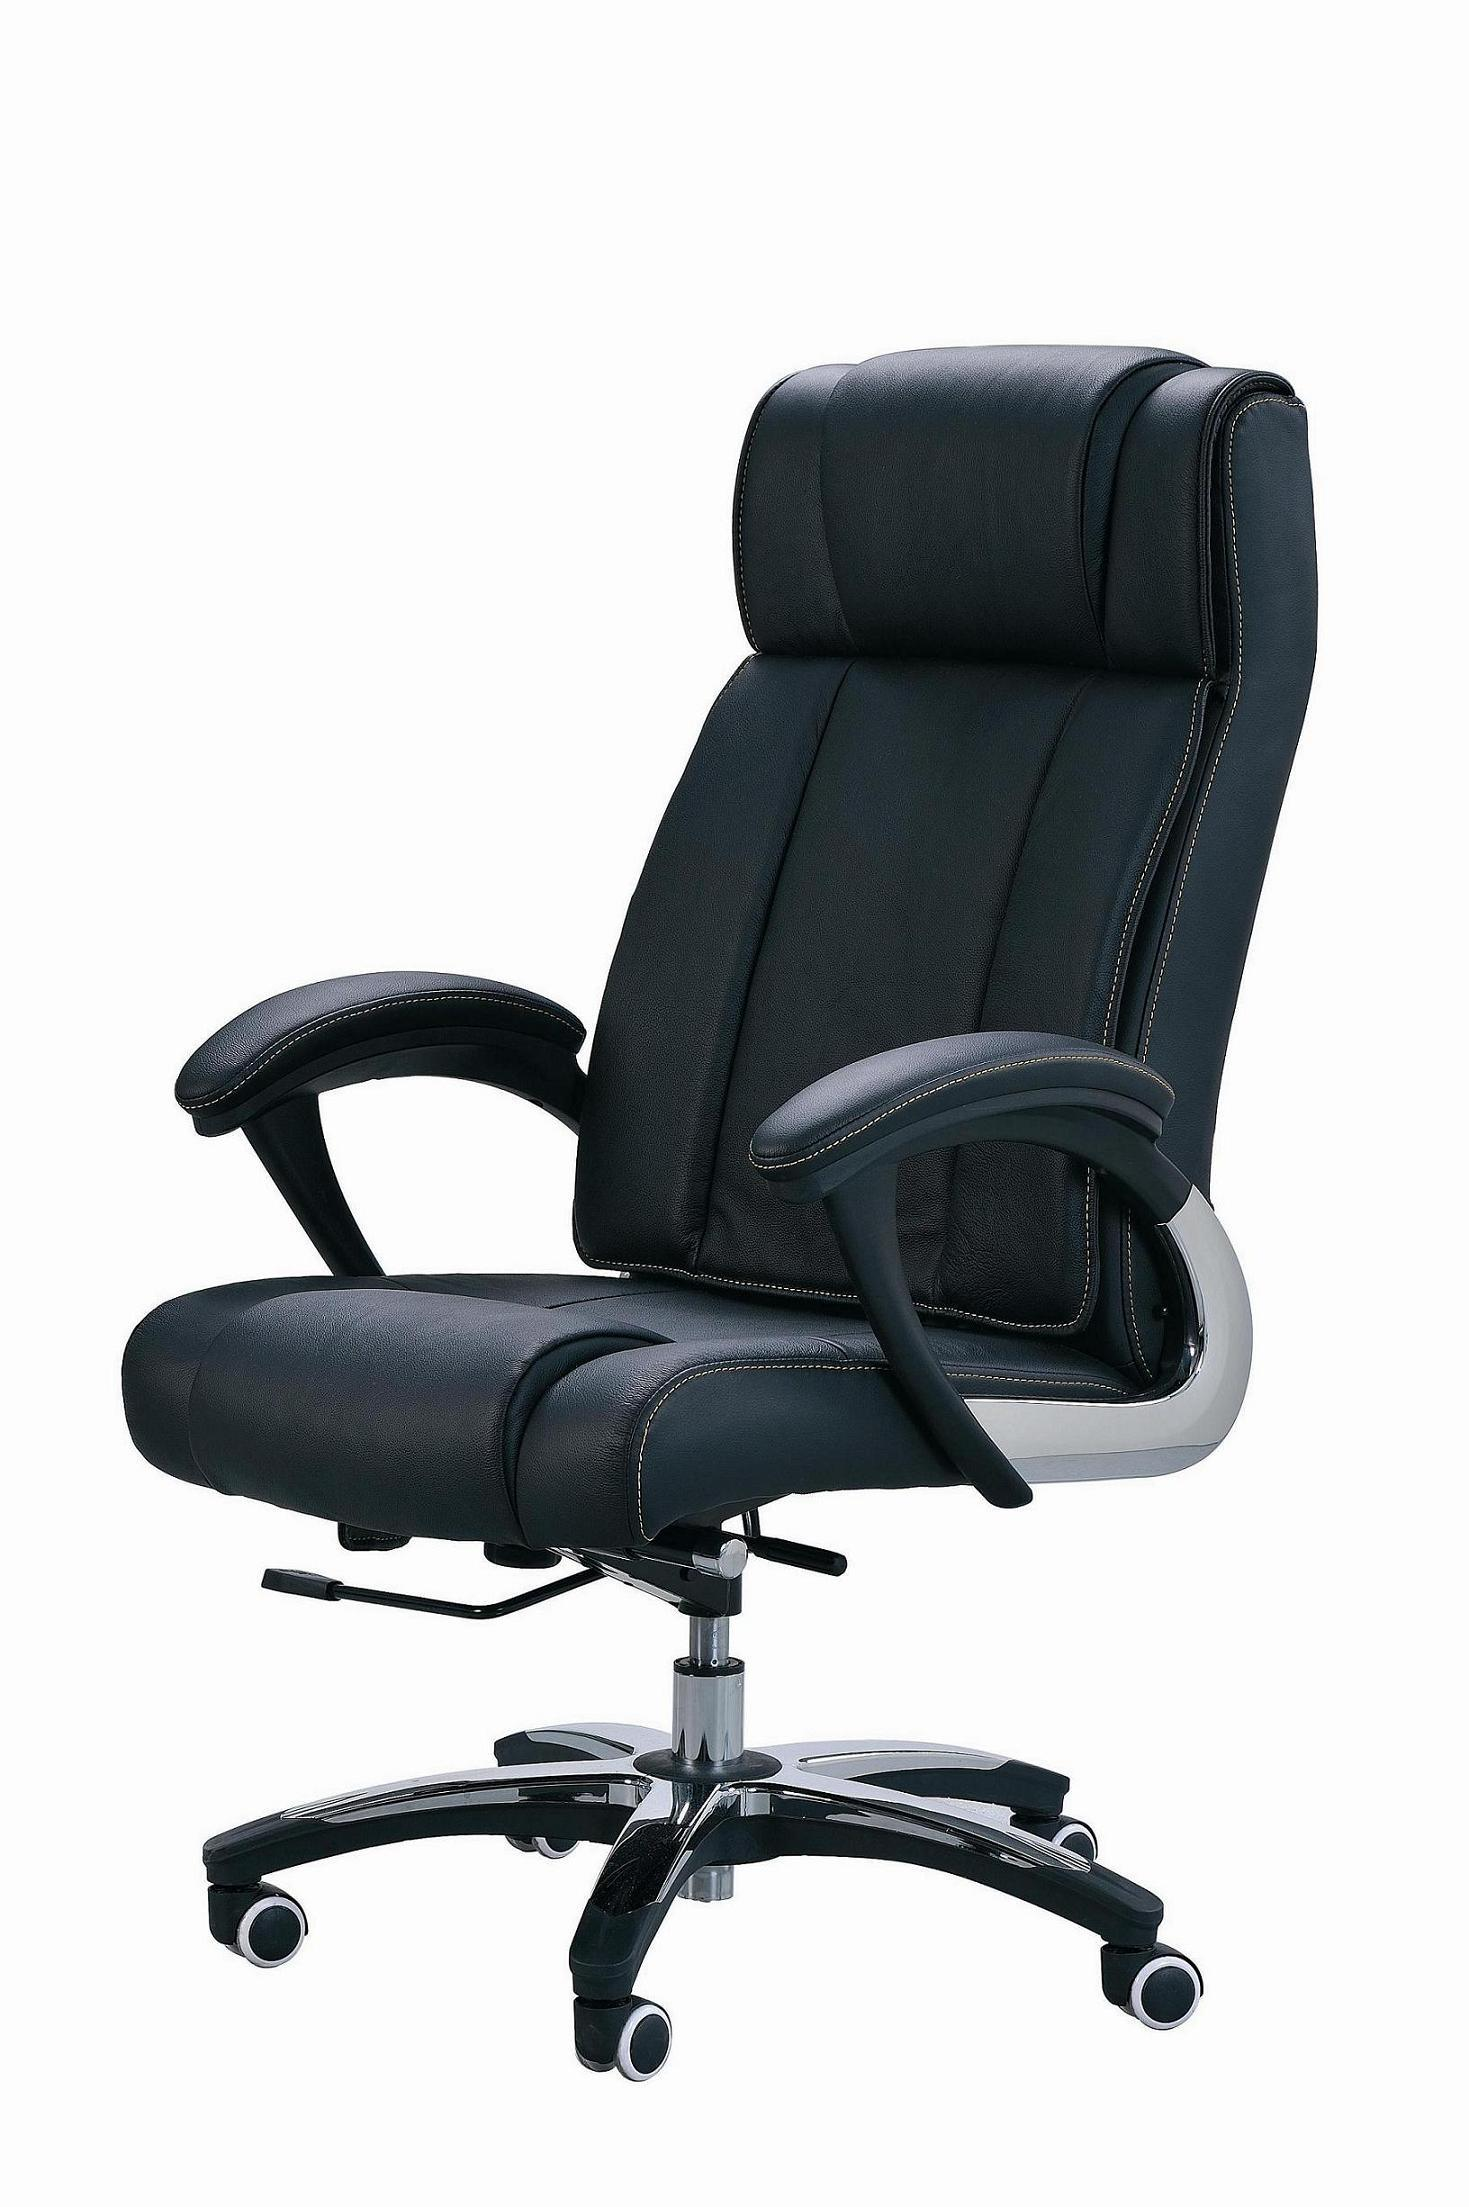 Buying office chairs advice online